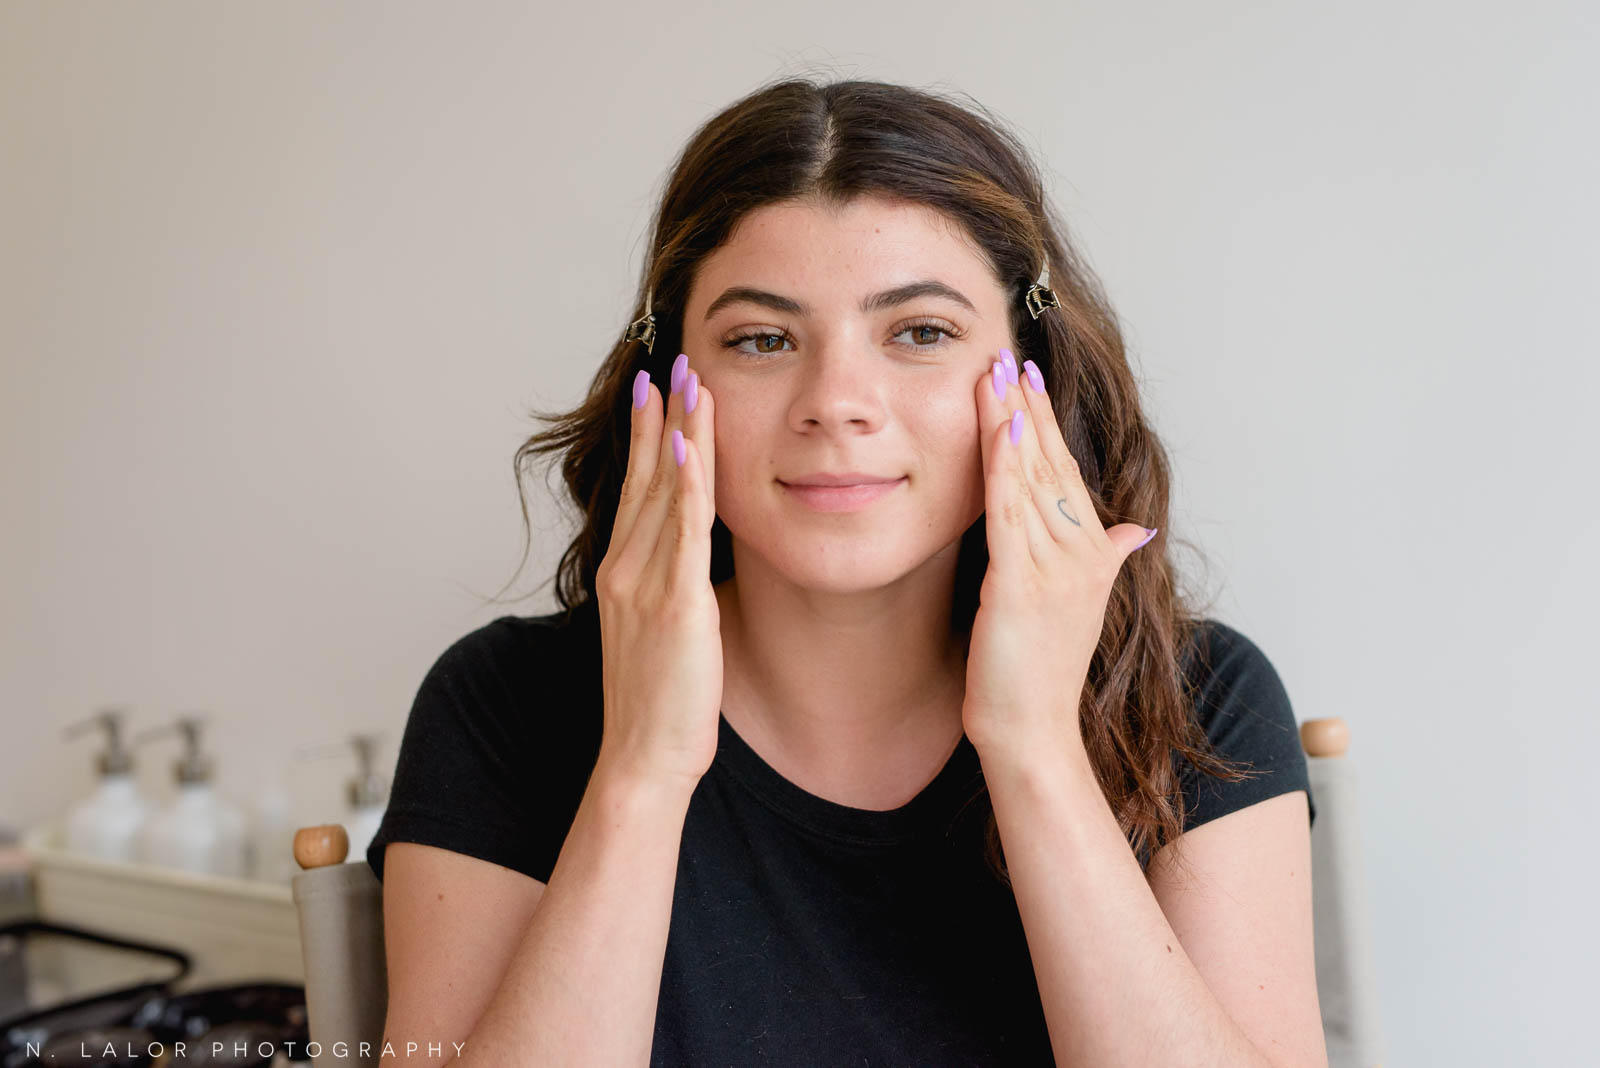 Makeup tutorial for photoshoots, applying moisturizer to skin is the first step. Photo by N. Lalor Photography, makeup tips by Haus of Pretty of Westport CT.